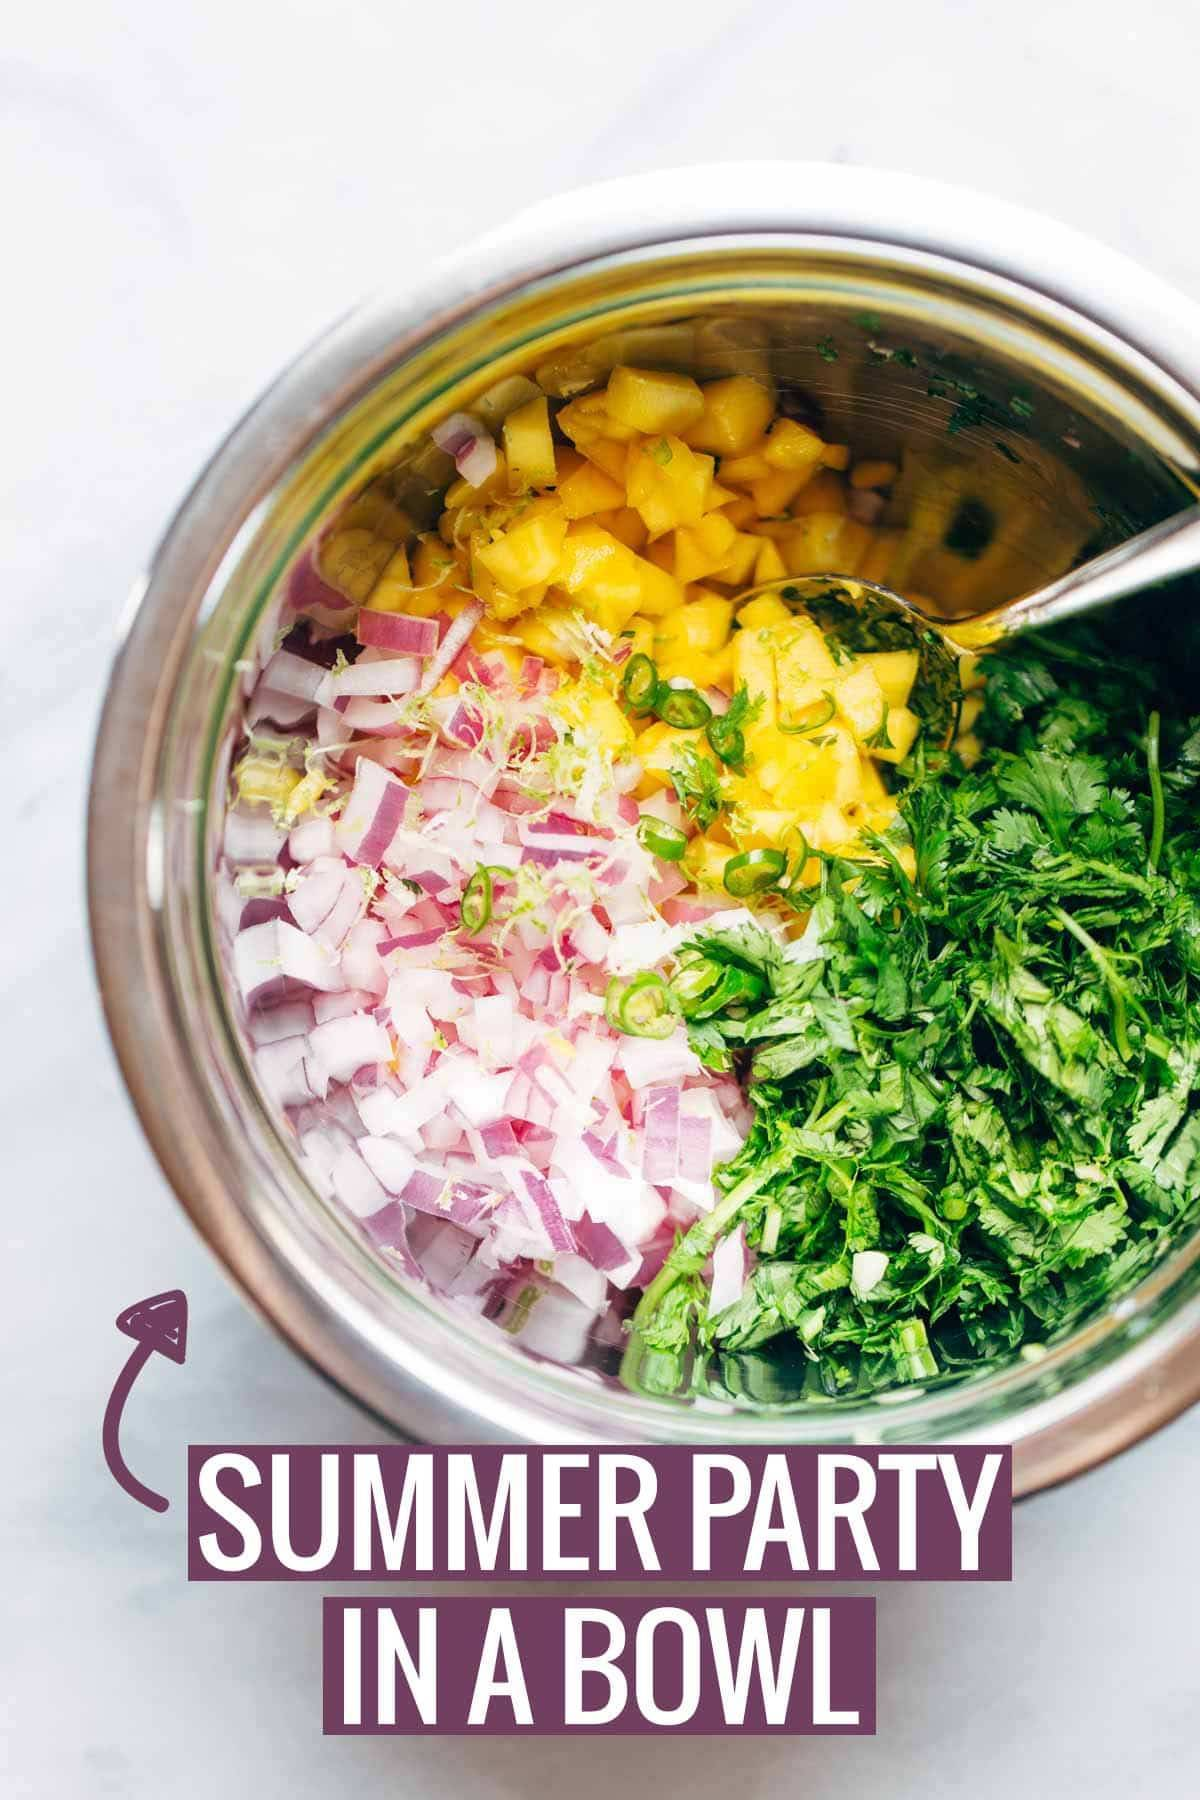 summer party in a bowl with text